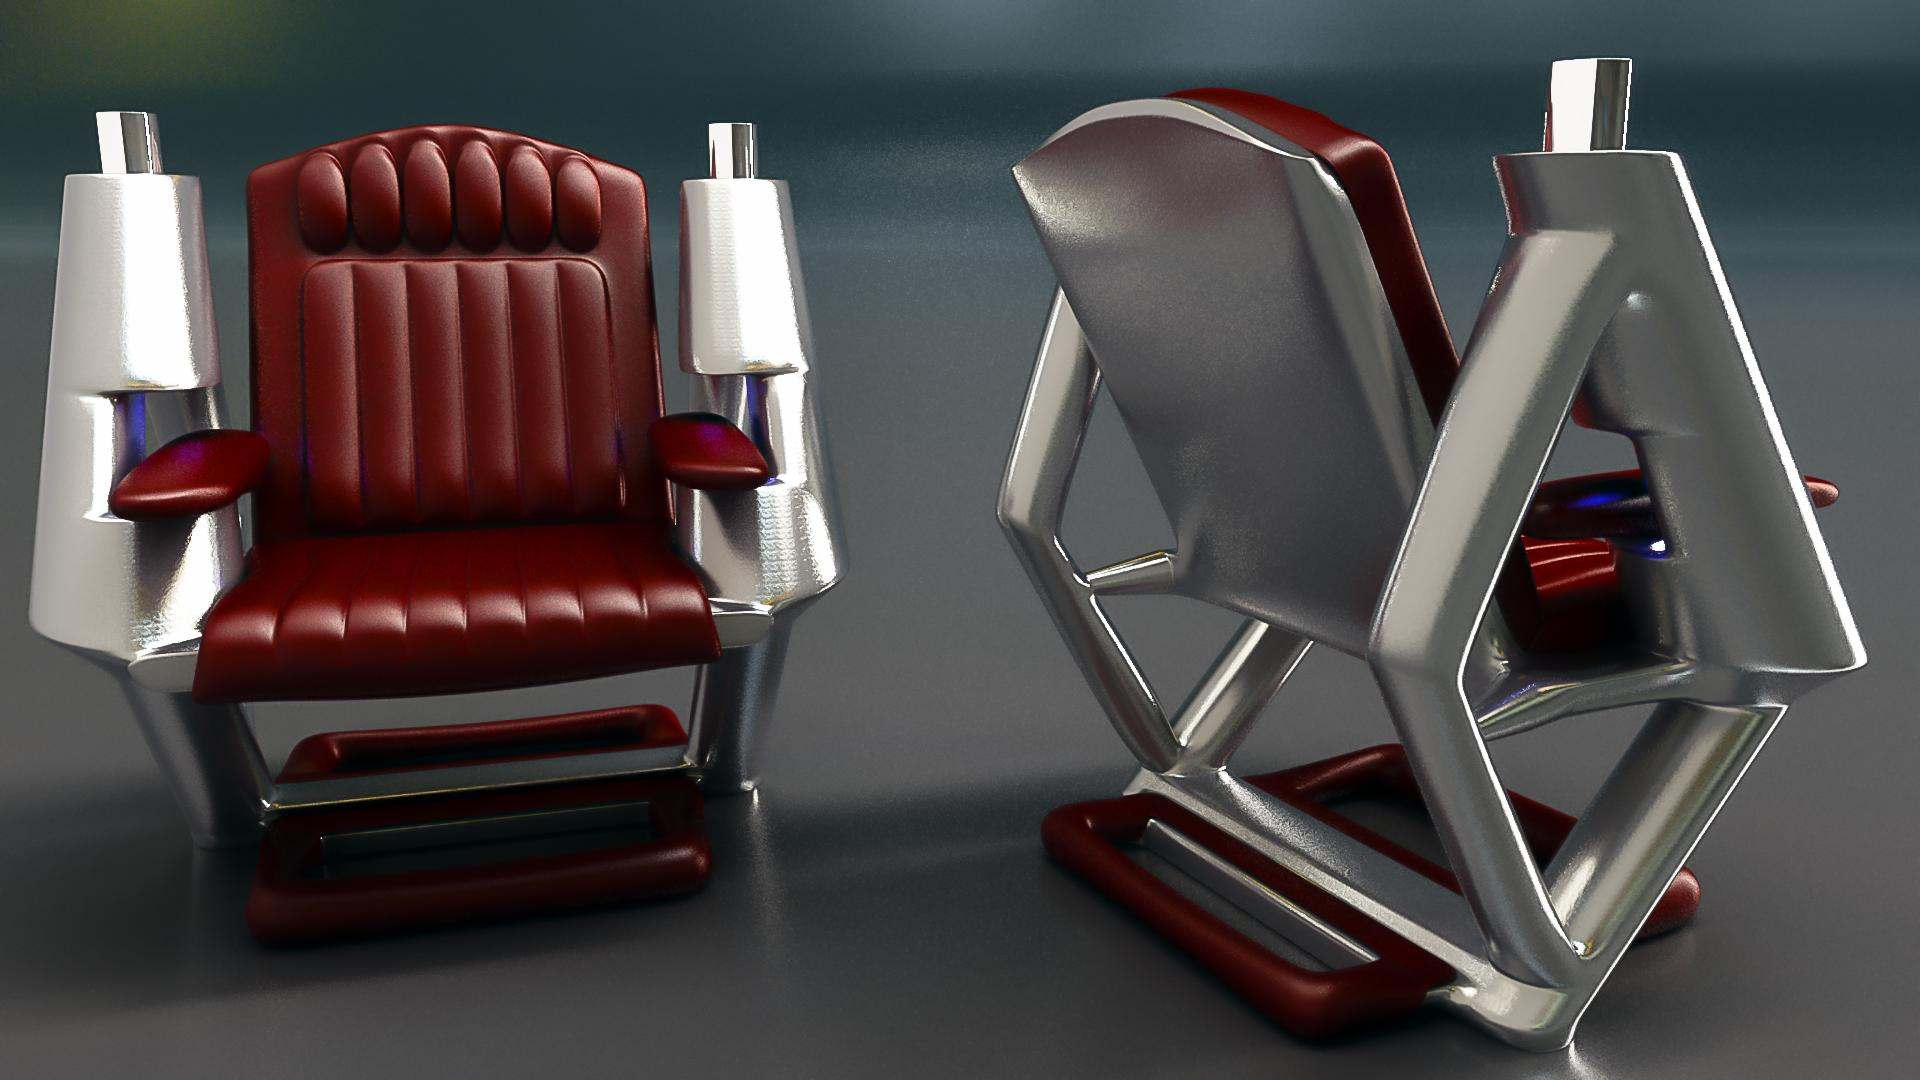 industrialdesign Industrial Design Modeled and Rendered in Modo by Mike Grauer